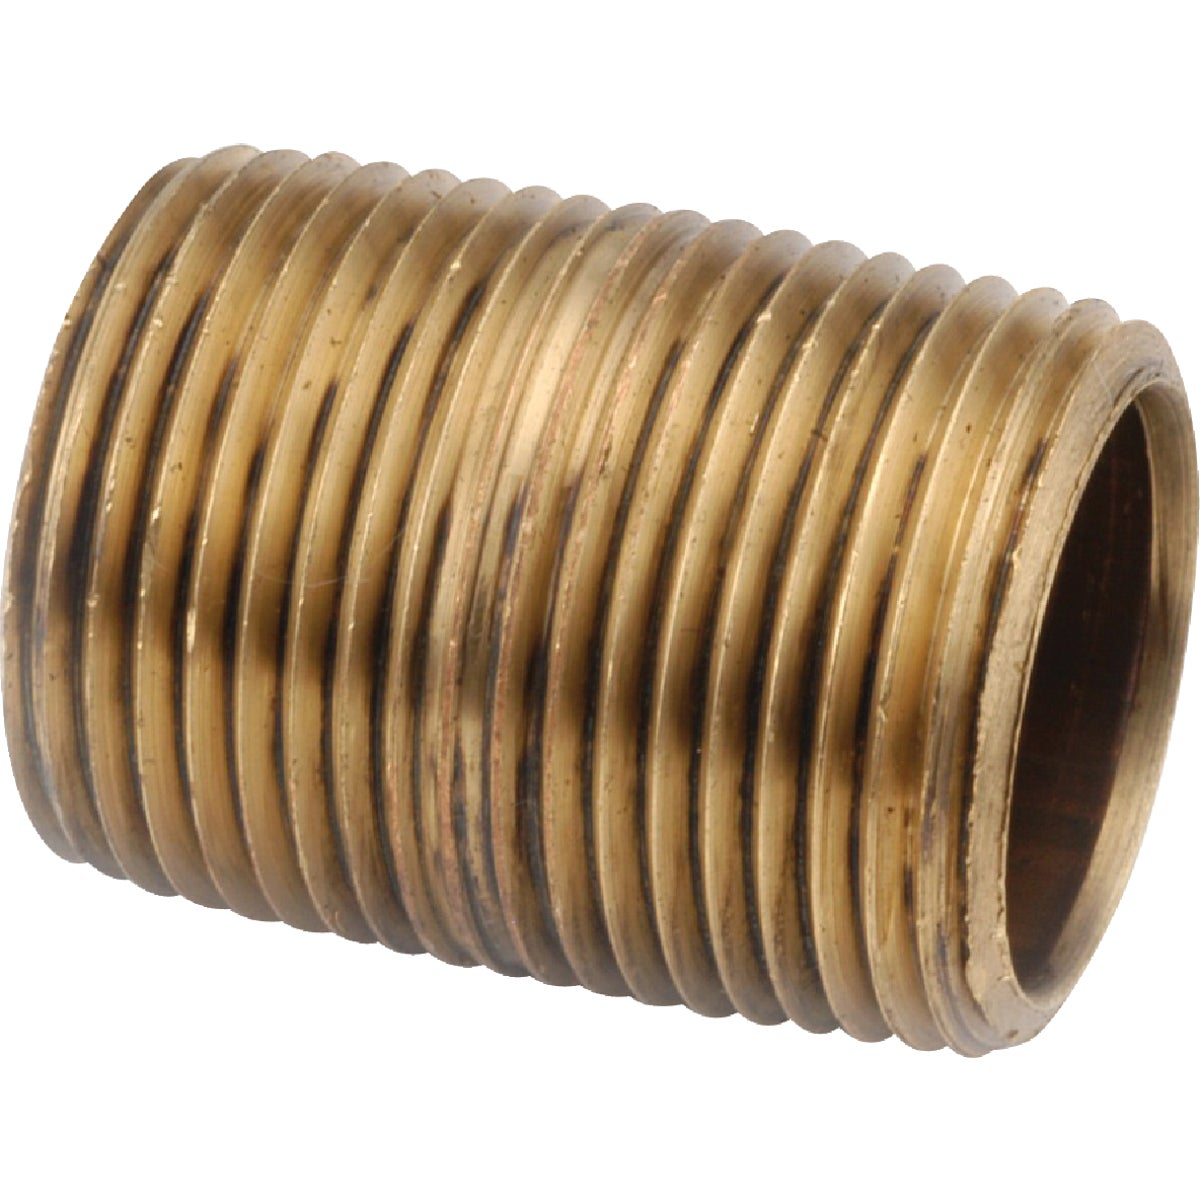 1/8XCLS RED BRASS NIPPLE - 736112-02 by Anderson Metals Corp